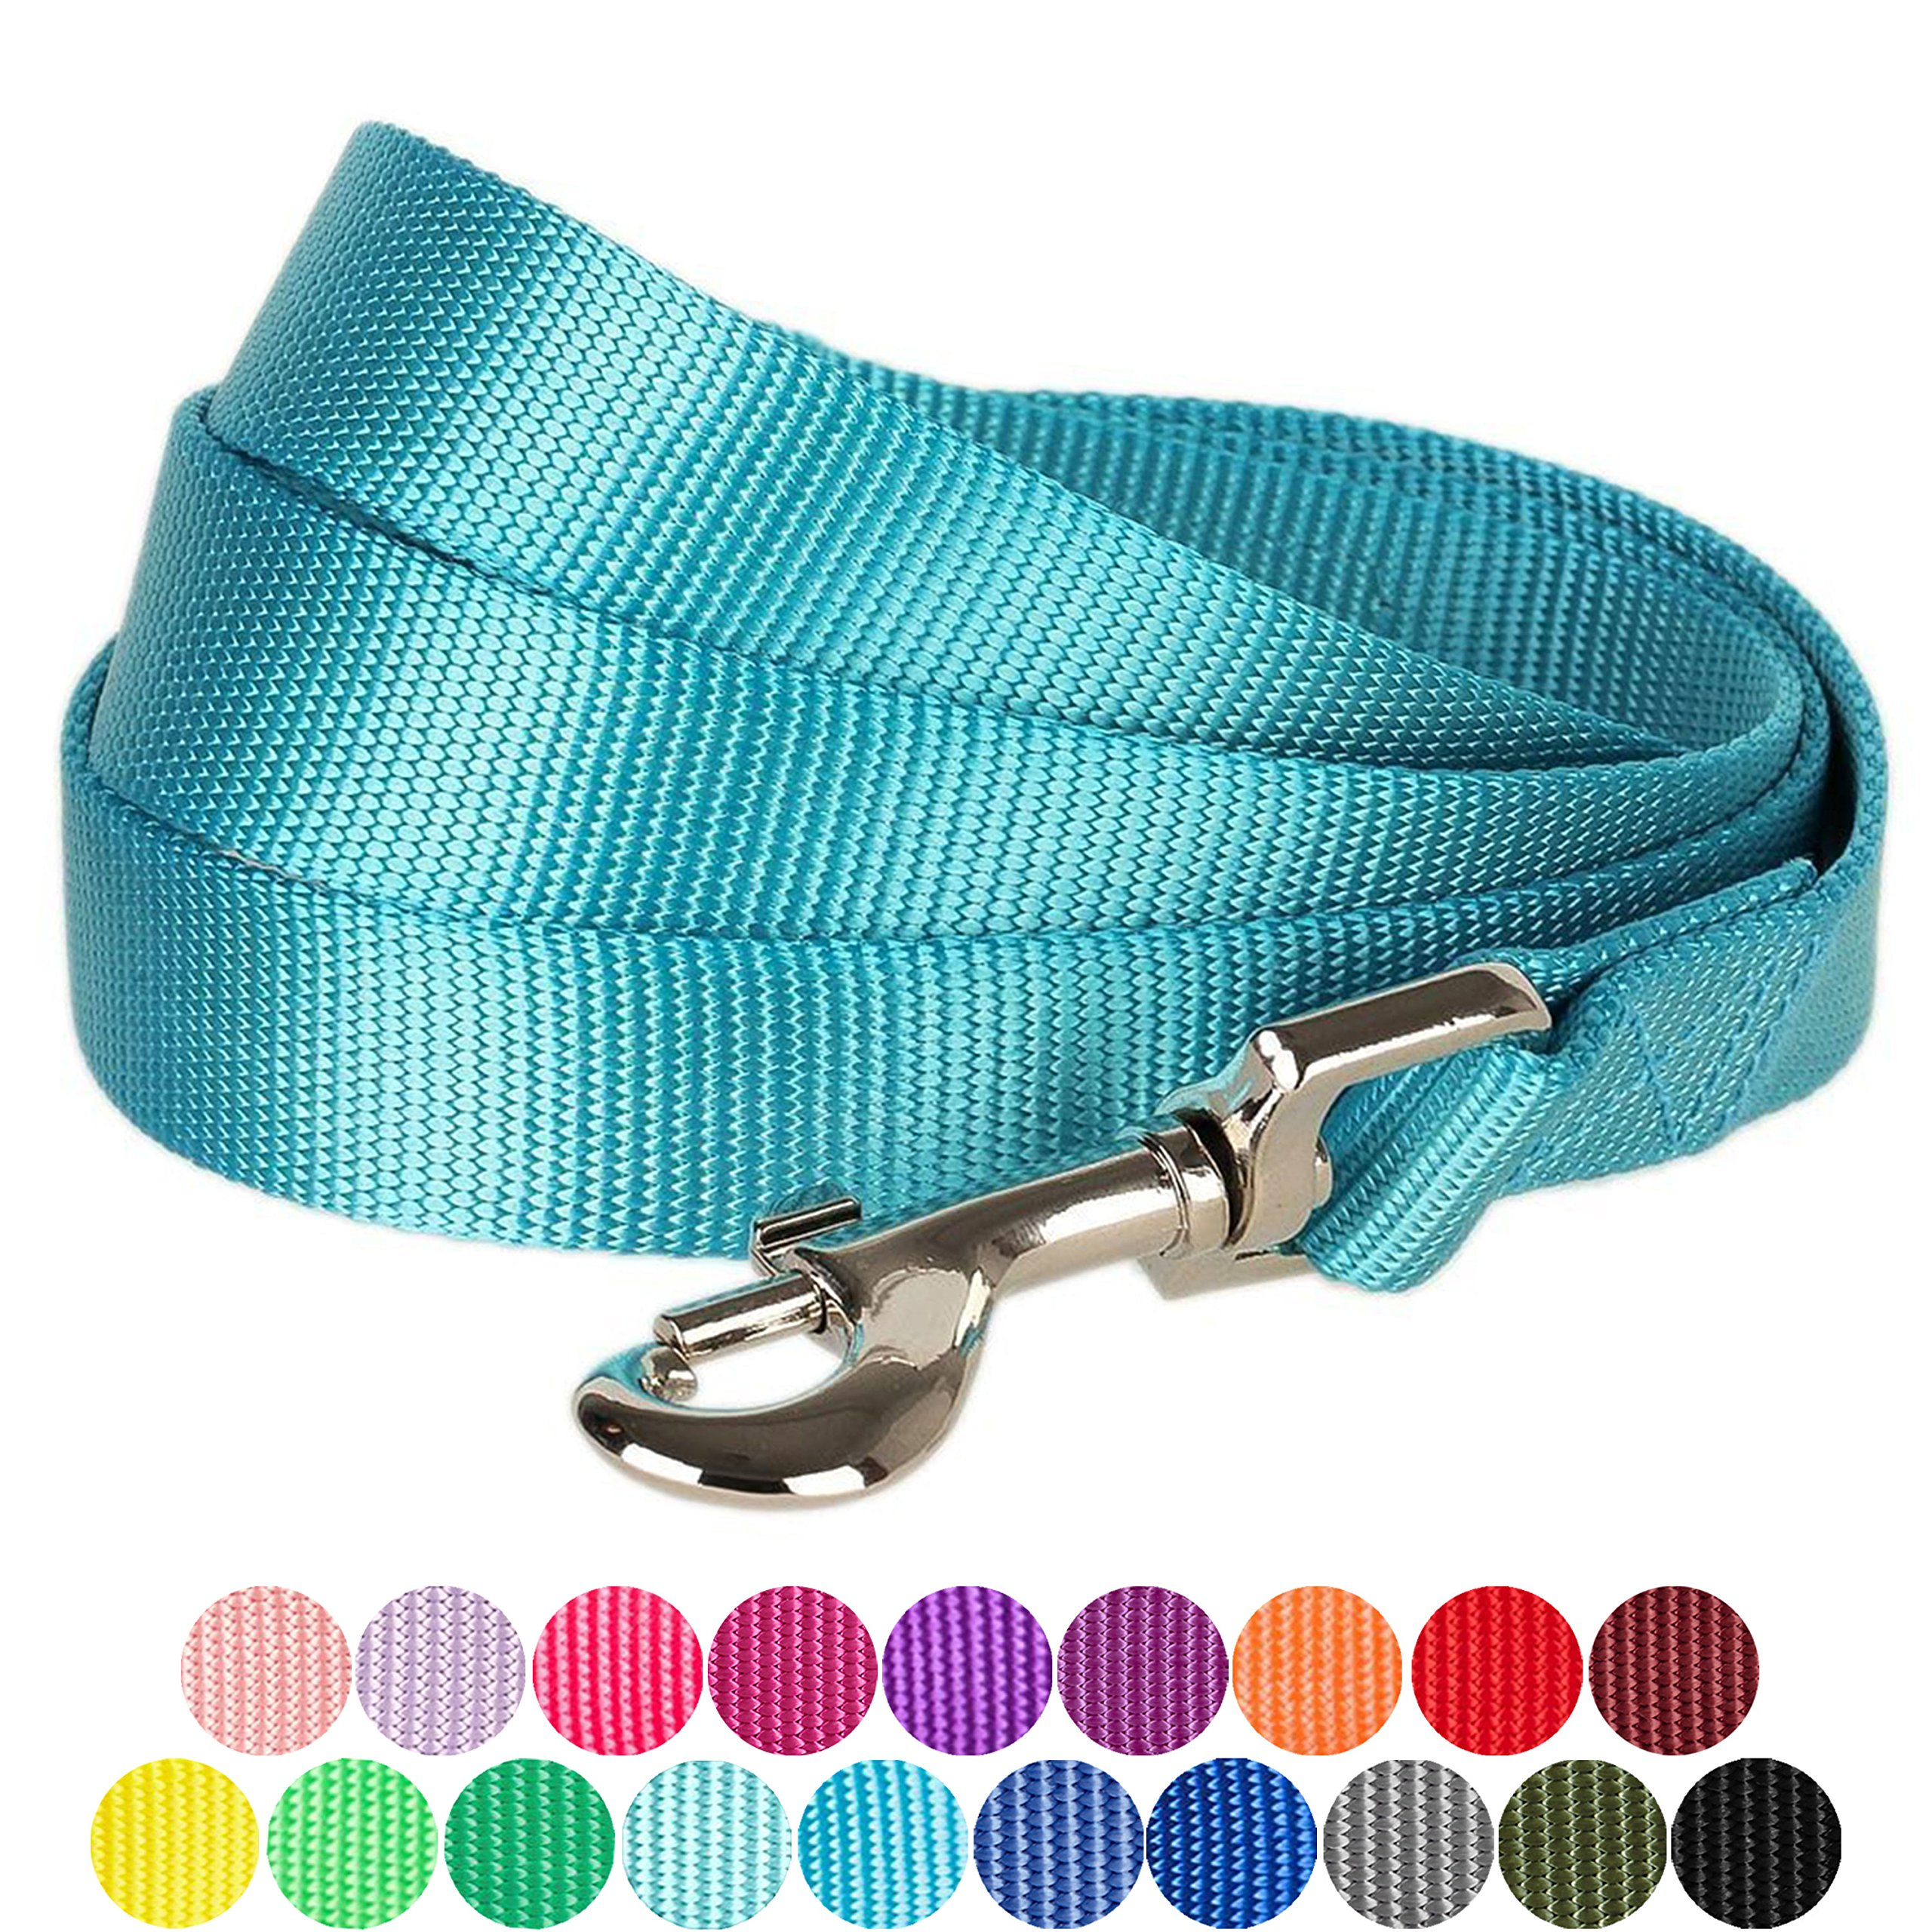 Blueberry Pet 19 Colors Durable Classic Dog Leash 5 ft x 5/8'', Medium Turquoise, Small, Basic Nylon Leashes for Dogs